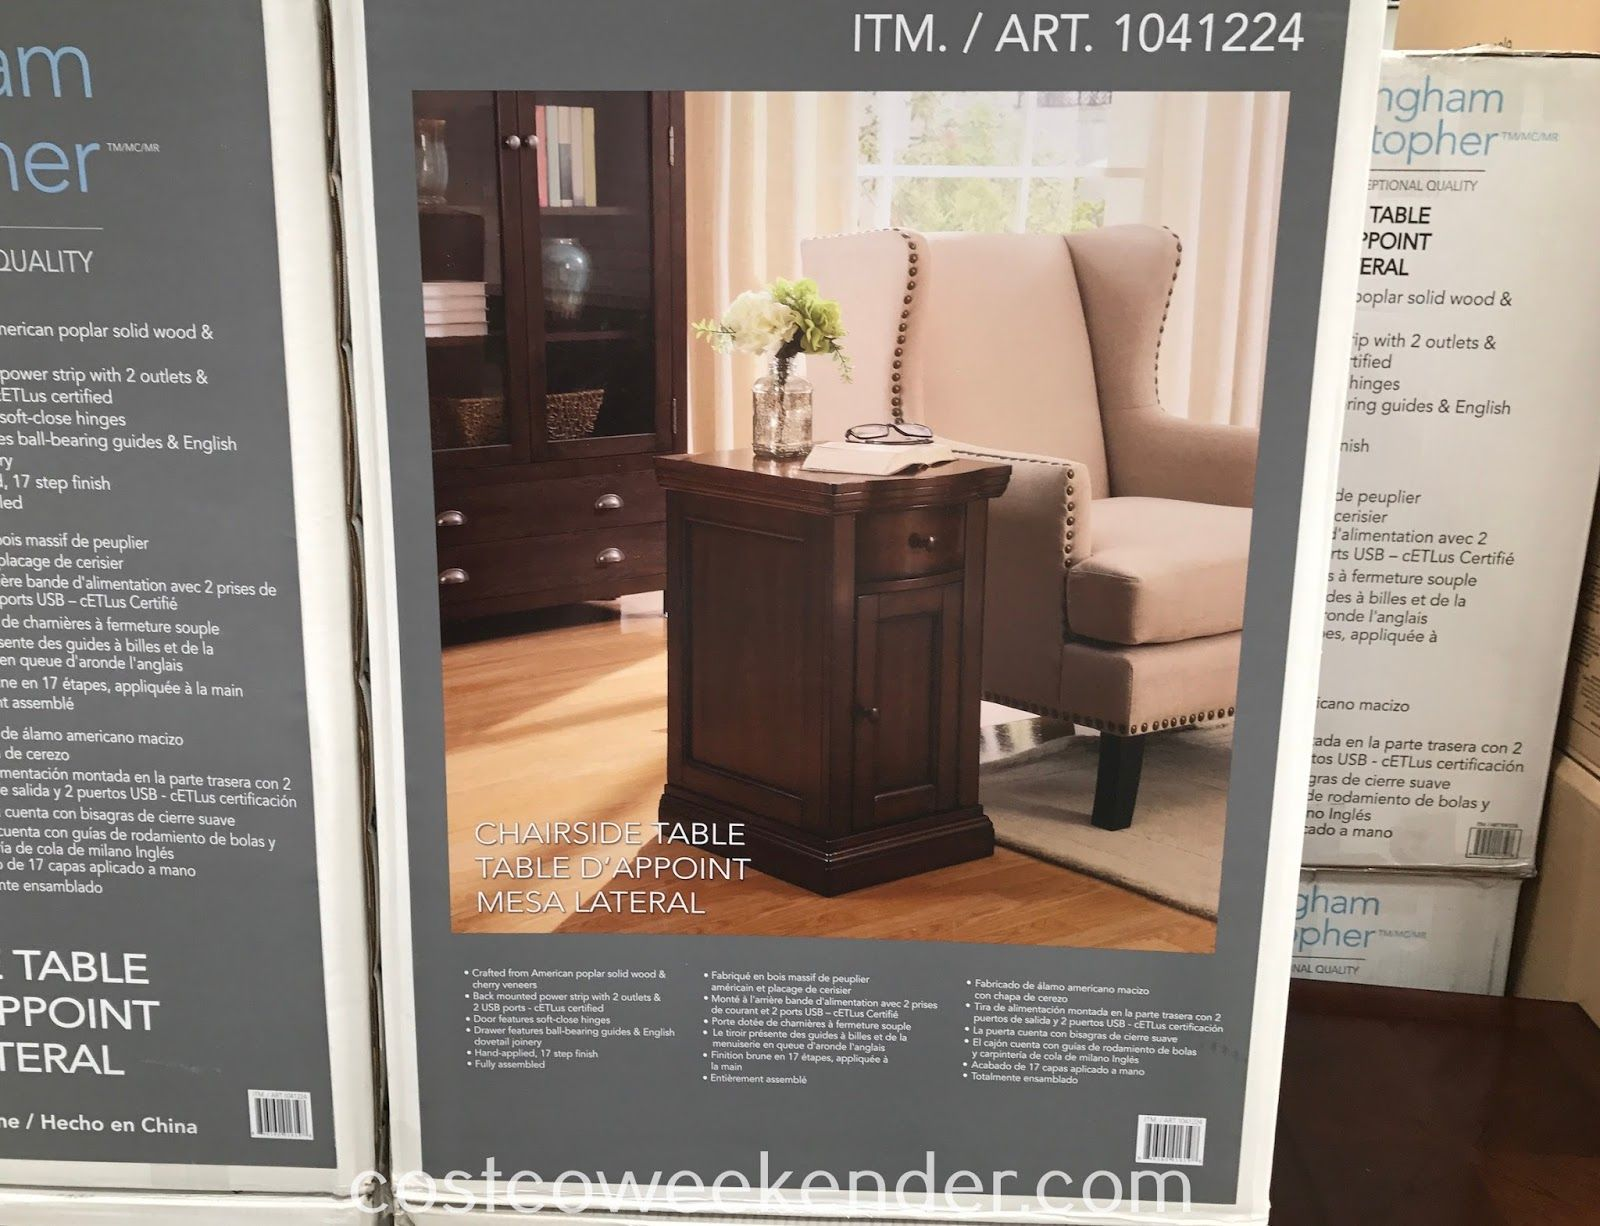 Any chair or couch needs an end table like the buckingham christopher well universal chairside table item no 1041244 which is available at costco for